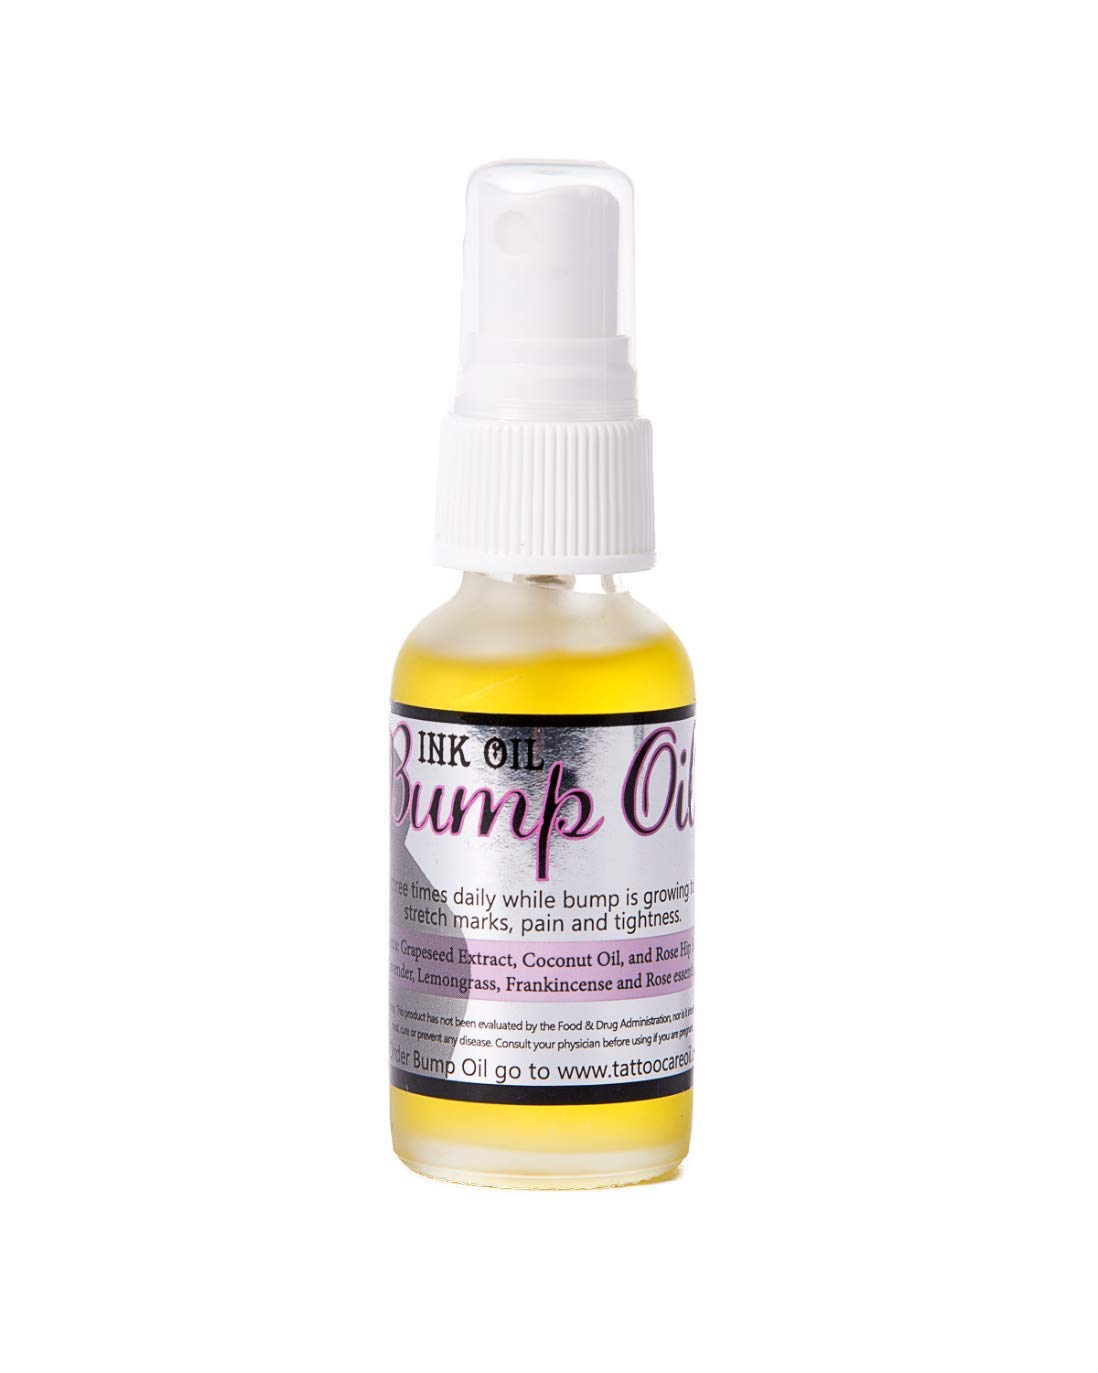 Bump Oil by Ink Oil | Revitalizing Stretch Mark Oil | Works like Belly Cream for Pregnancy to Help with Prevention and Reduction of Stretch Marks | Improve Scars & Cellulite 100% Natural